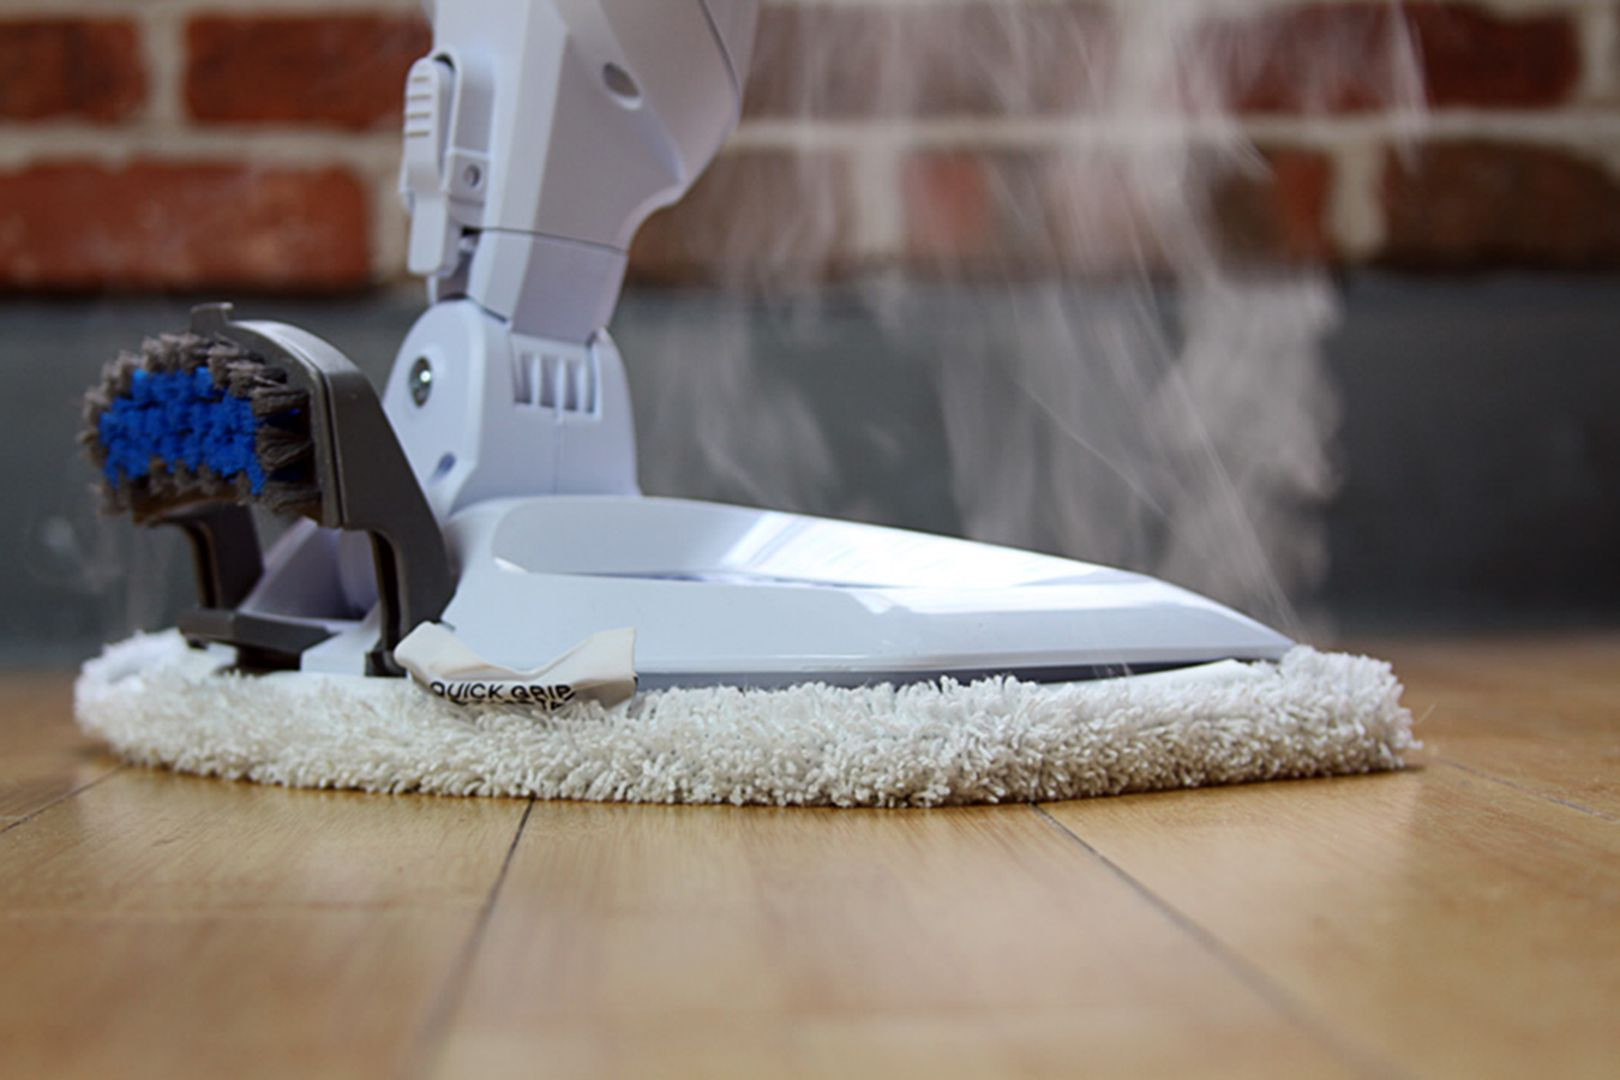 Hardwood Floor Cleaner Mop Of Use A Steam Mop Efficiently if You Want Clean Floors with Regard to Steam Mop 33683344996 29f26c2761 O 58f116ab3df78cd3fc1c2c16